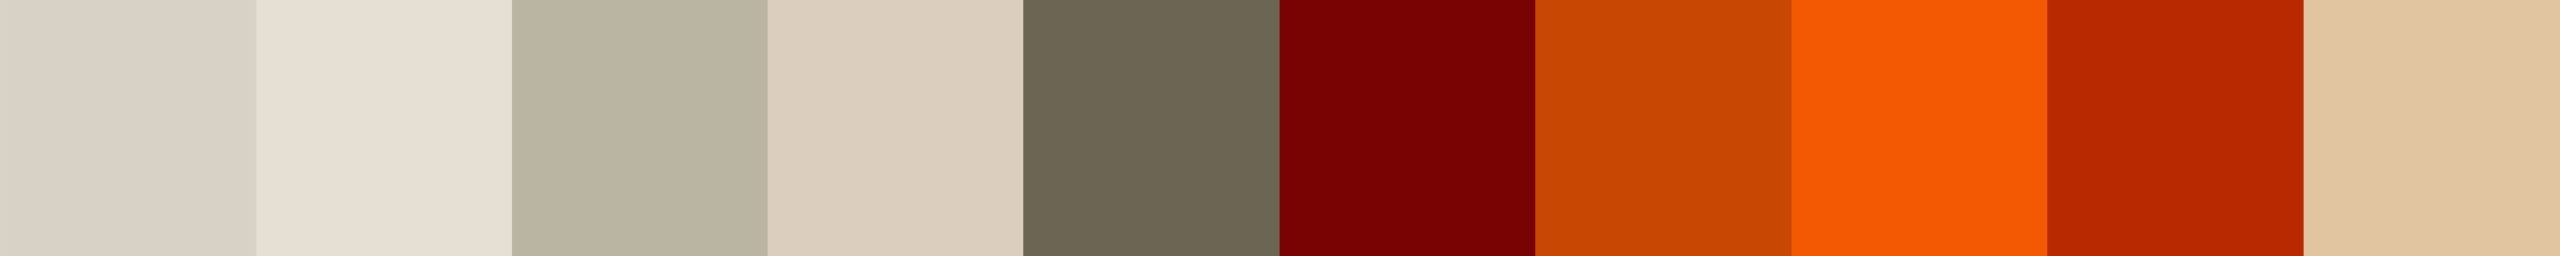 598 Oriel Color Palette